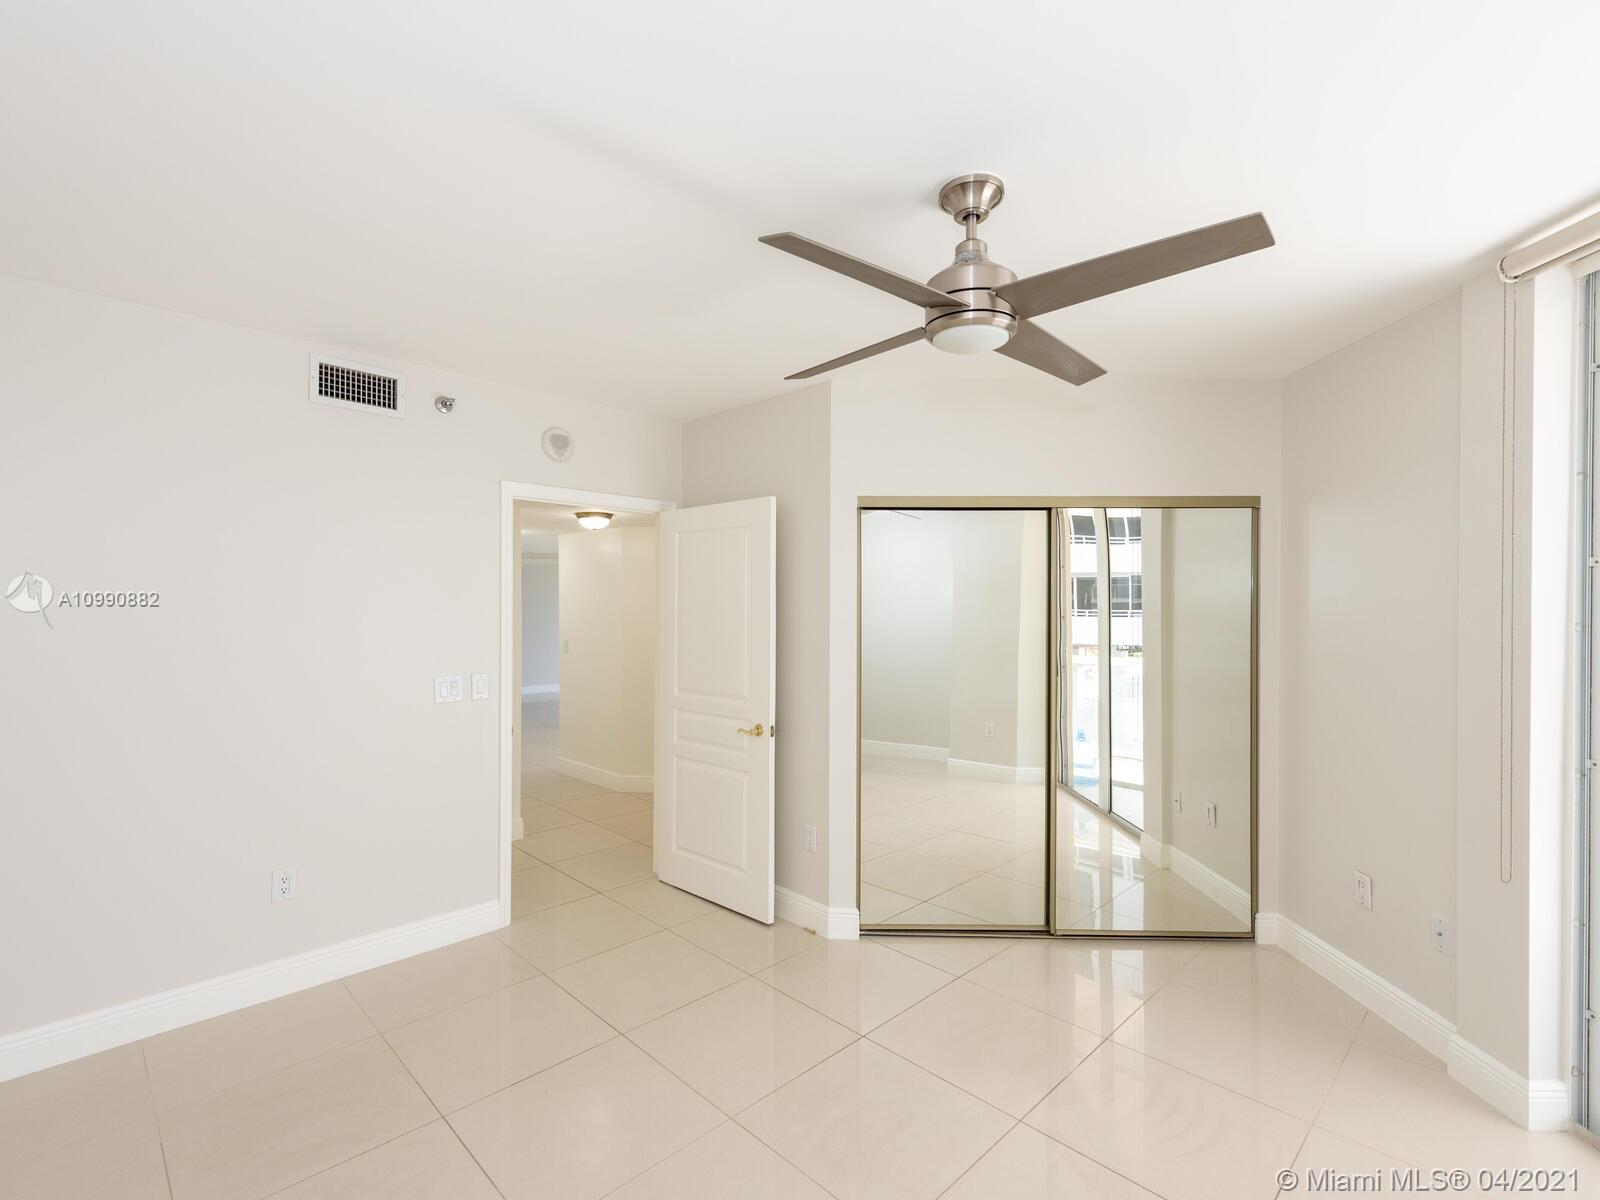 Photo of 8925 Collins Ave #2H, Surfside, Florida, 33154 - Second bedroom.